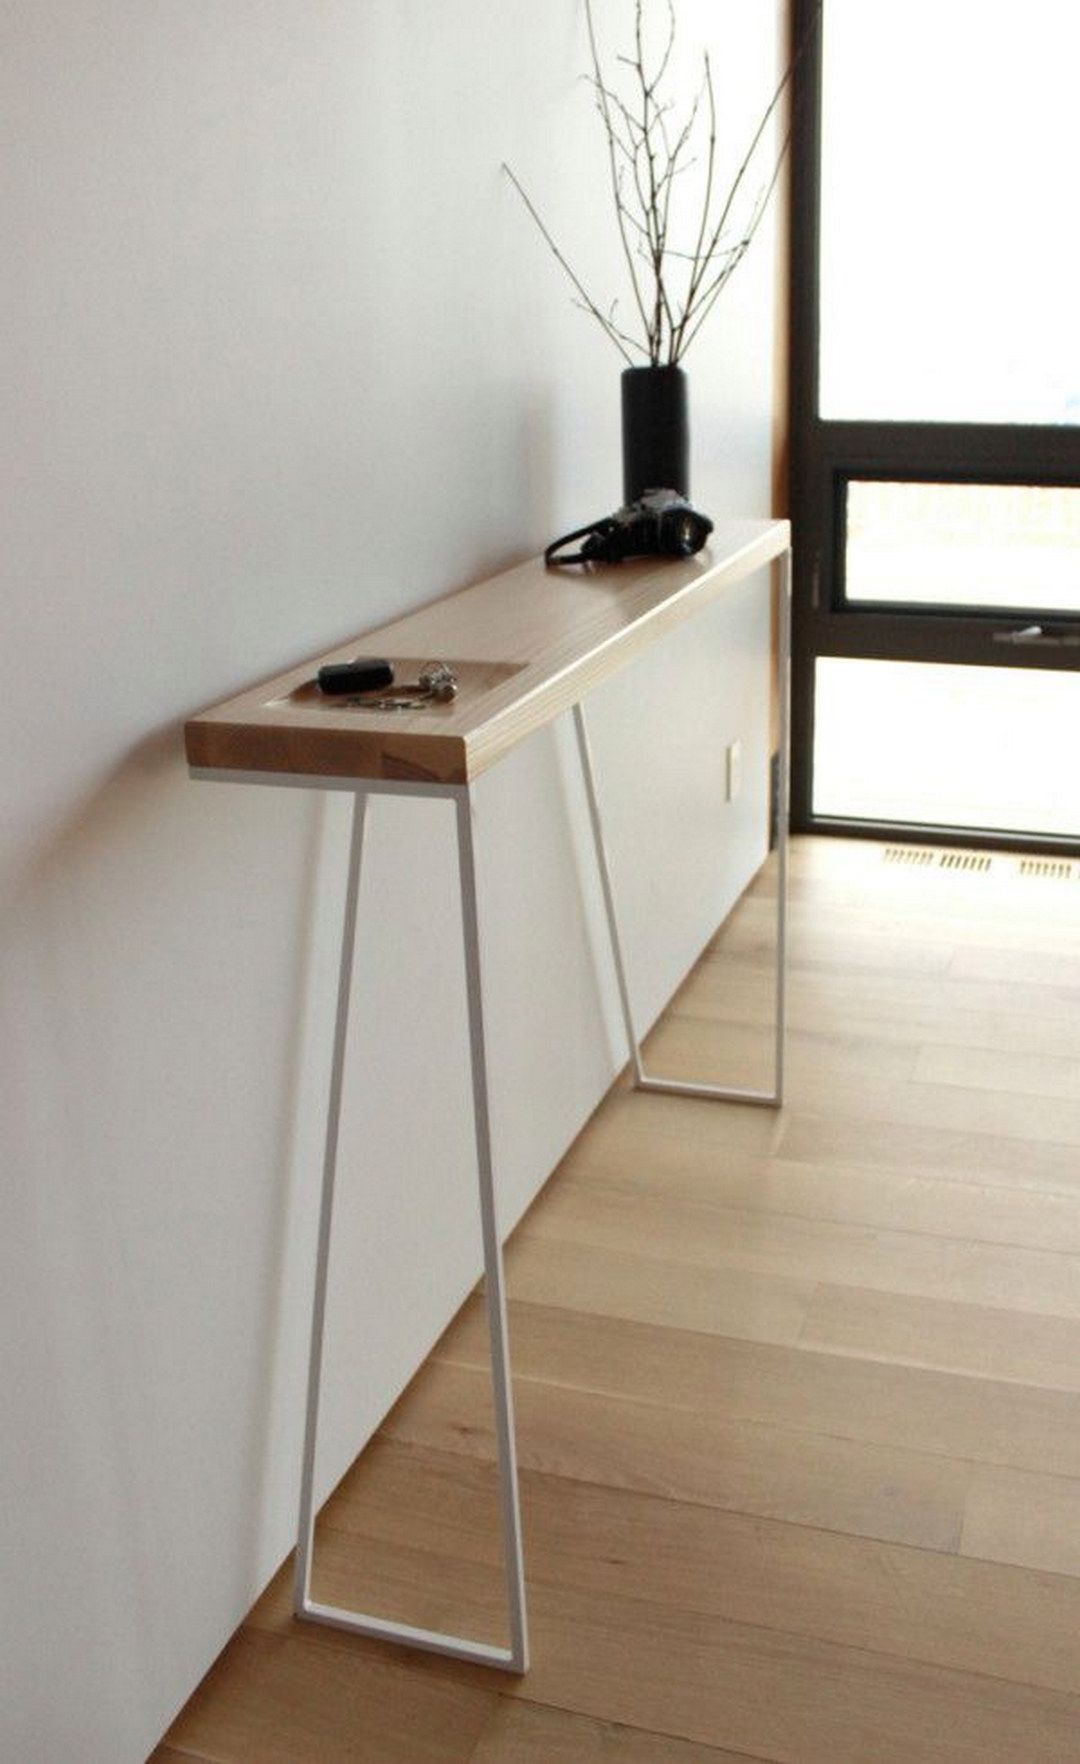 100 gorgeous minimalist furniture design ideas  https://www.futuristarchitecture.com/10620-minimalist-furniture.html MBLDDVY